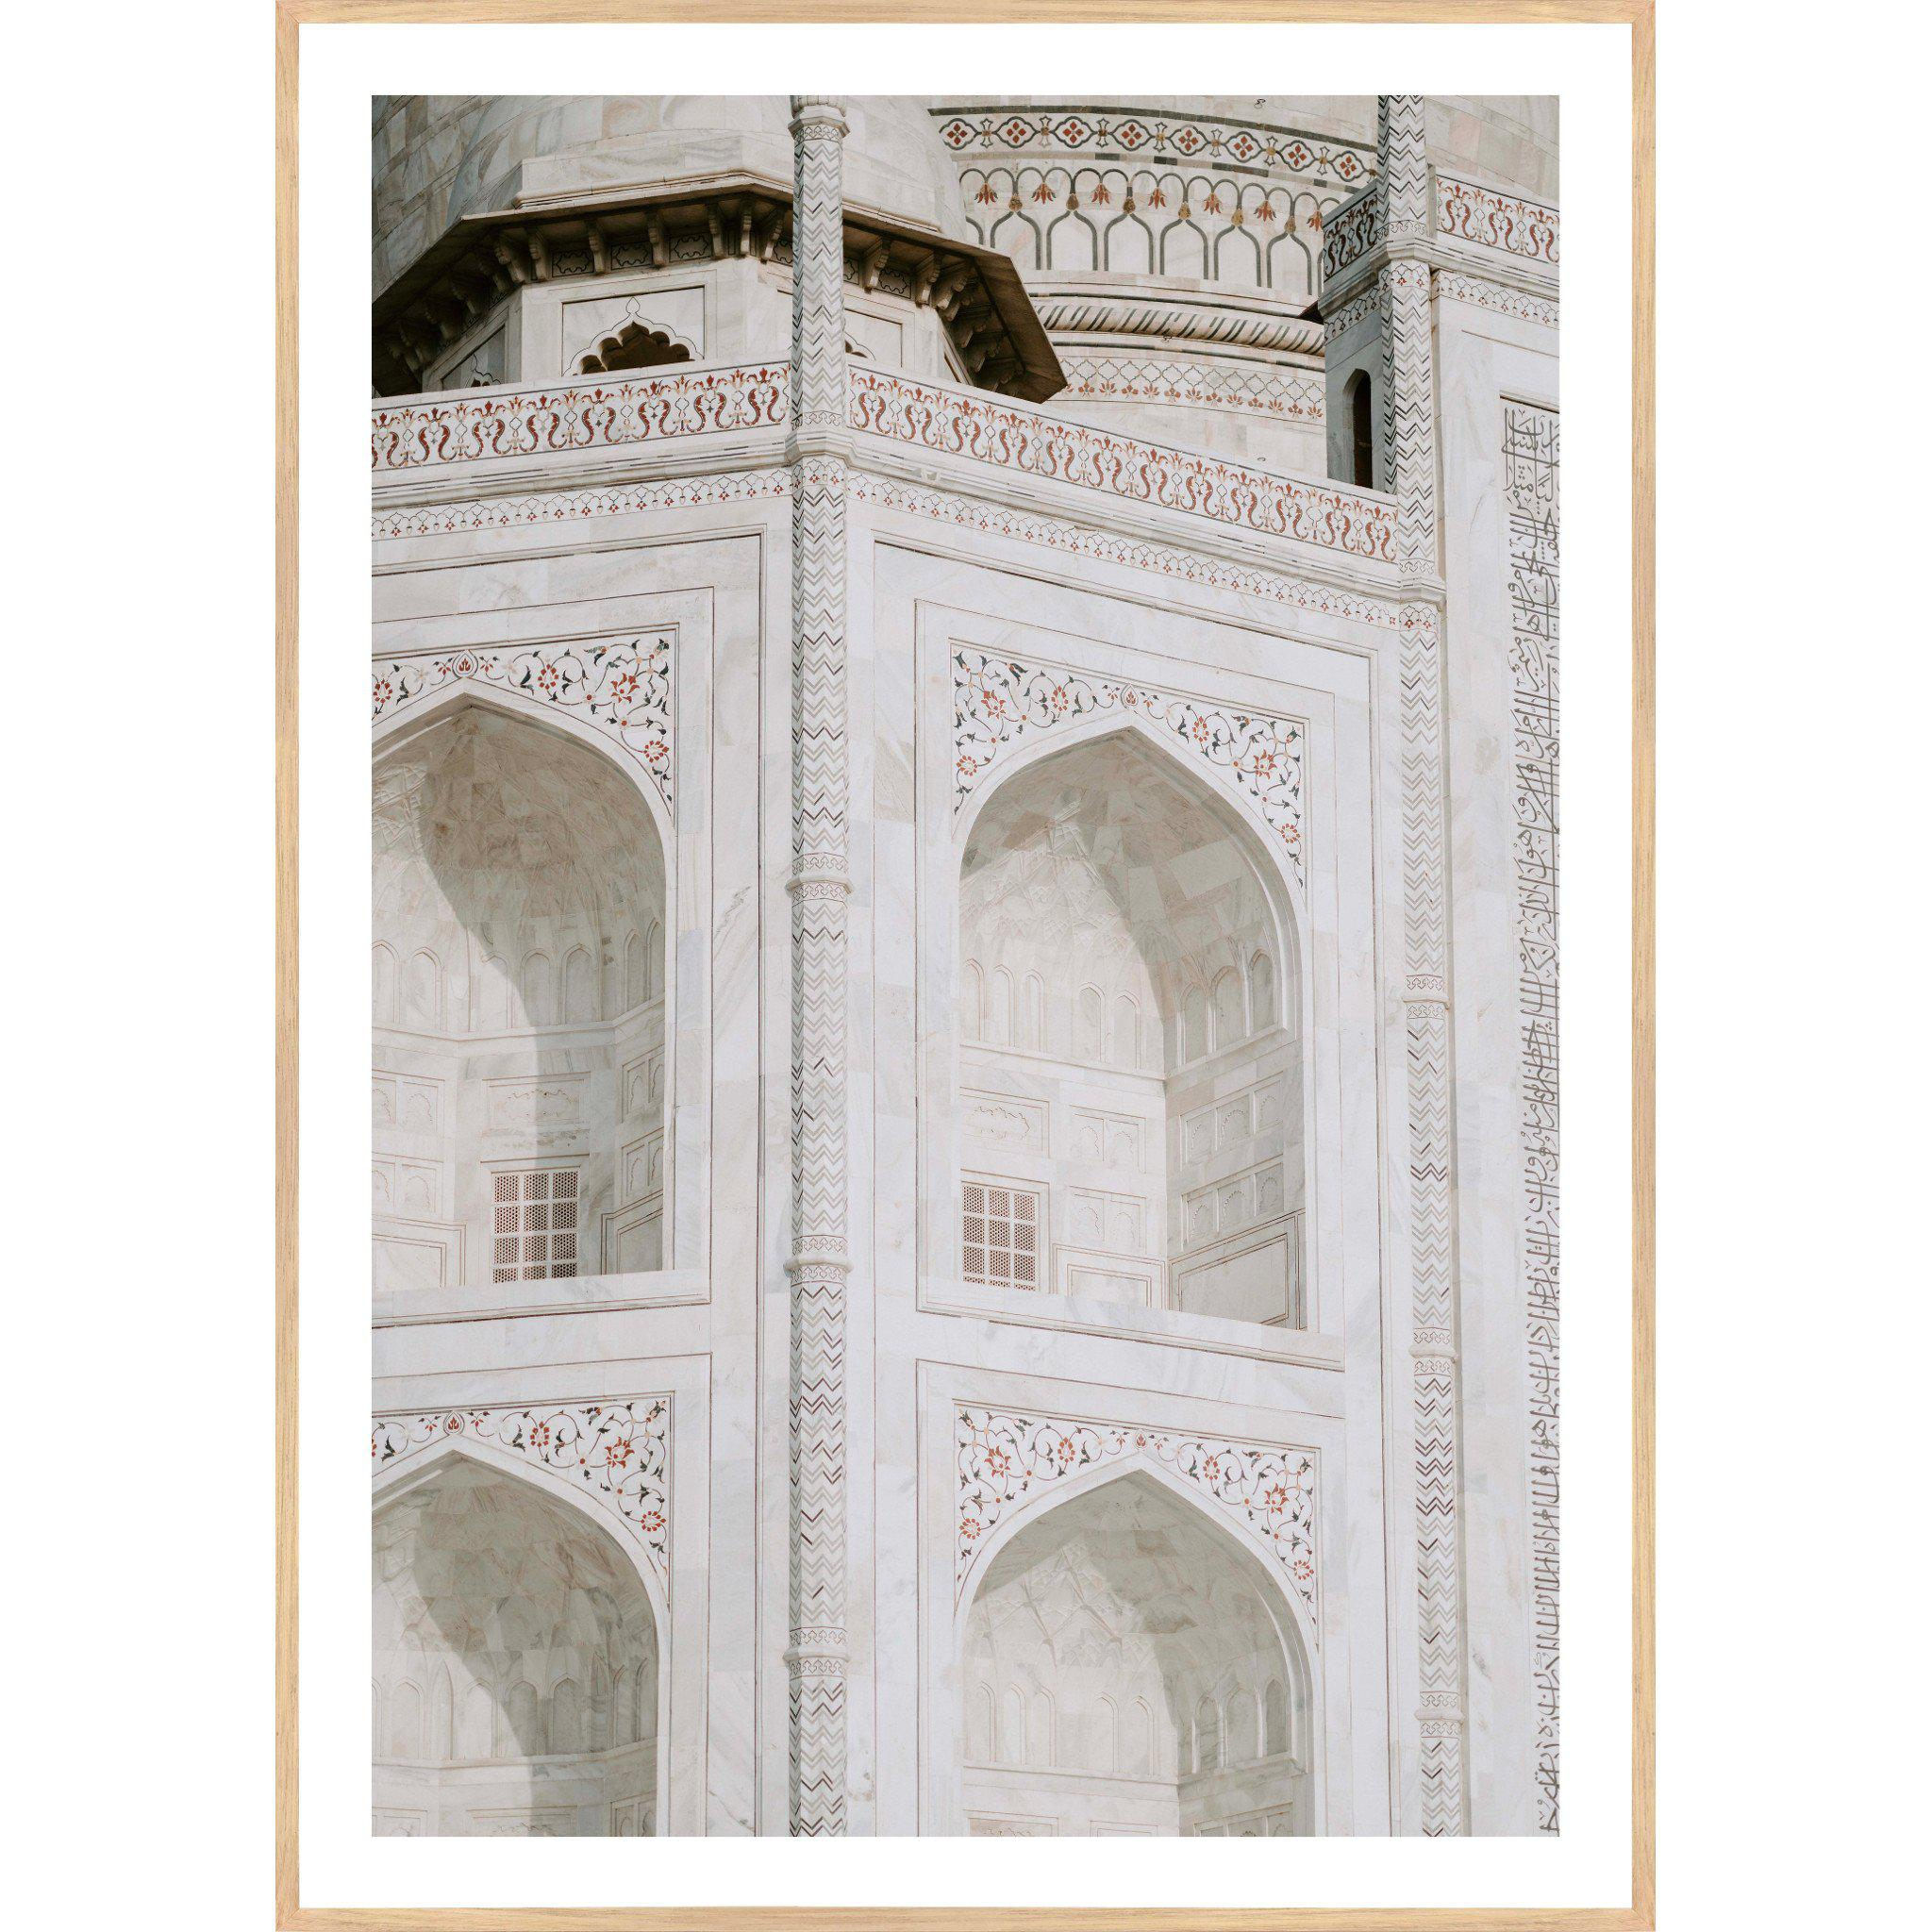 The Taj - Wall Art Print, Portrait